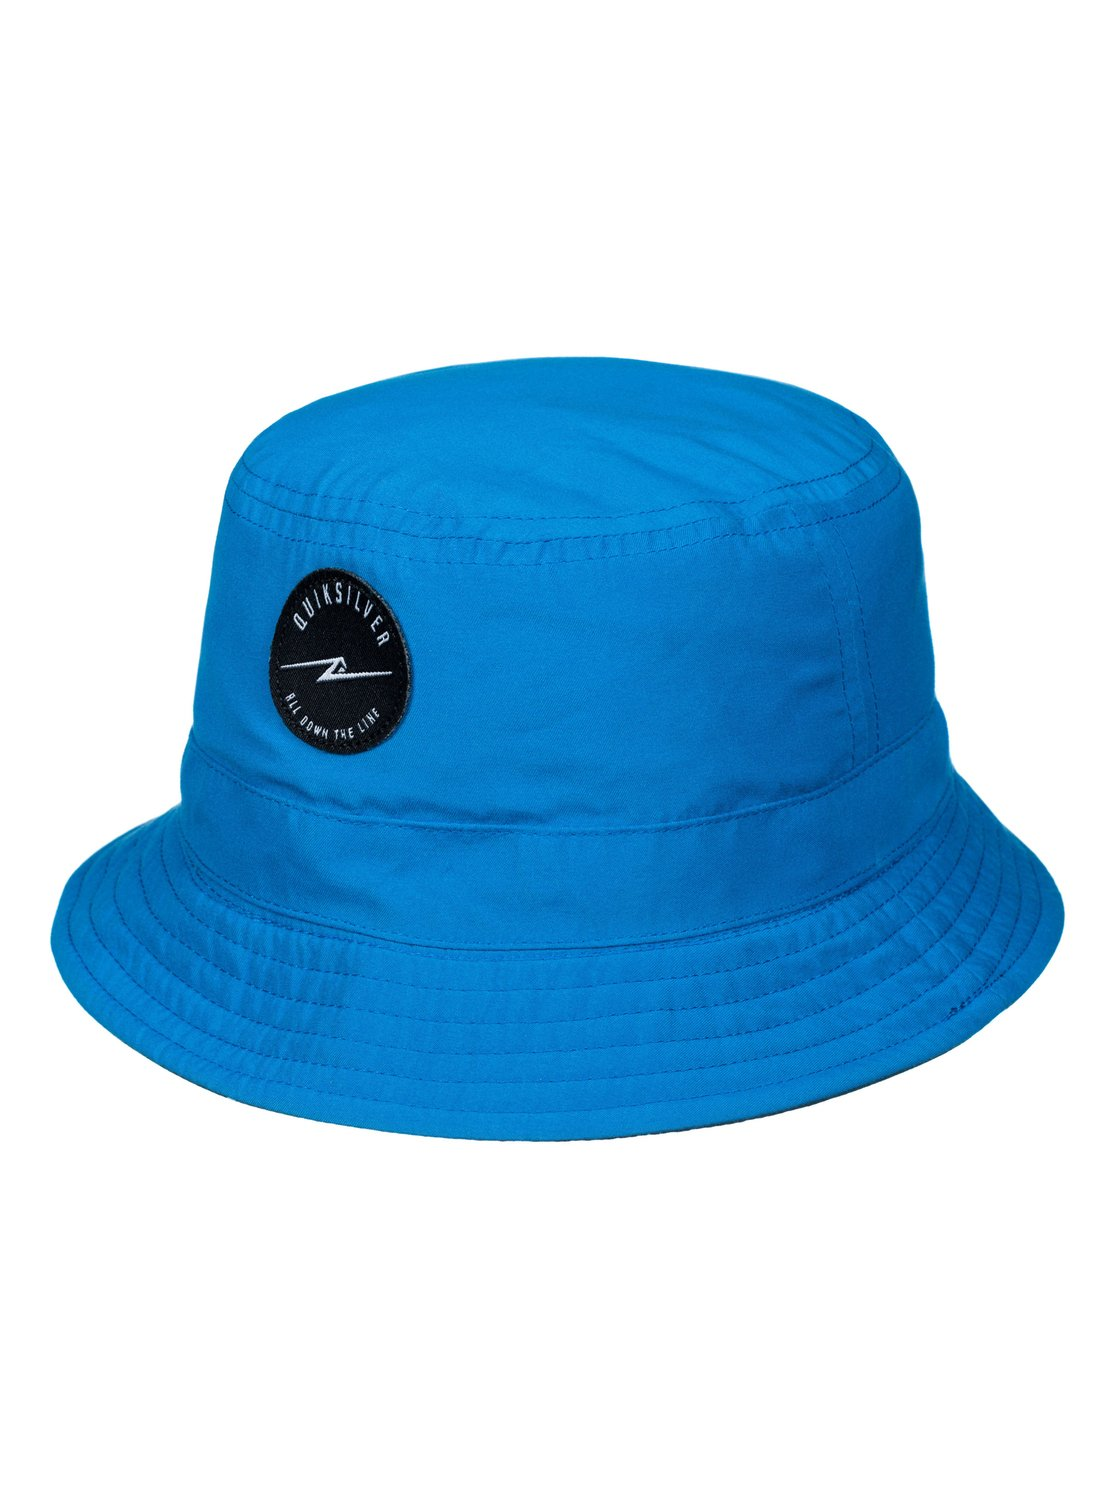 Shop for boys bucket hat online at Target. Free shipping on purchases over $35 and save 5% every day with your Target REDcard.